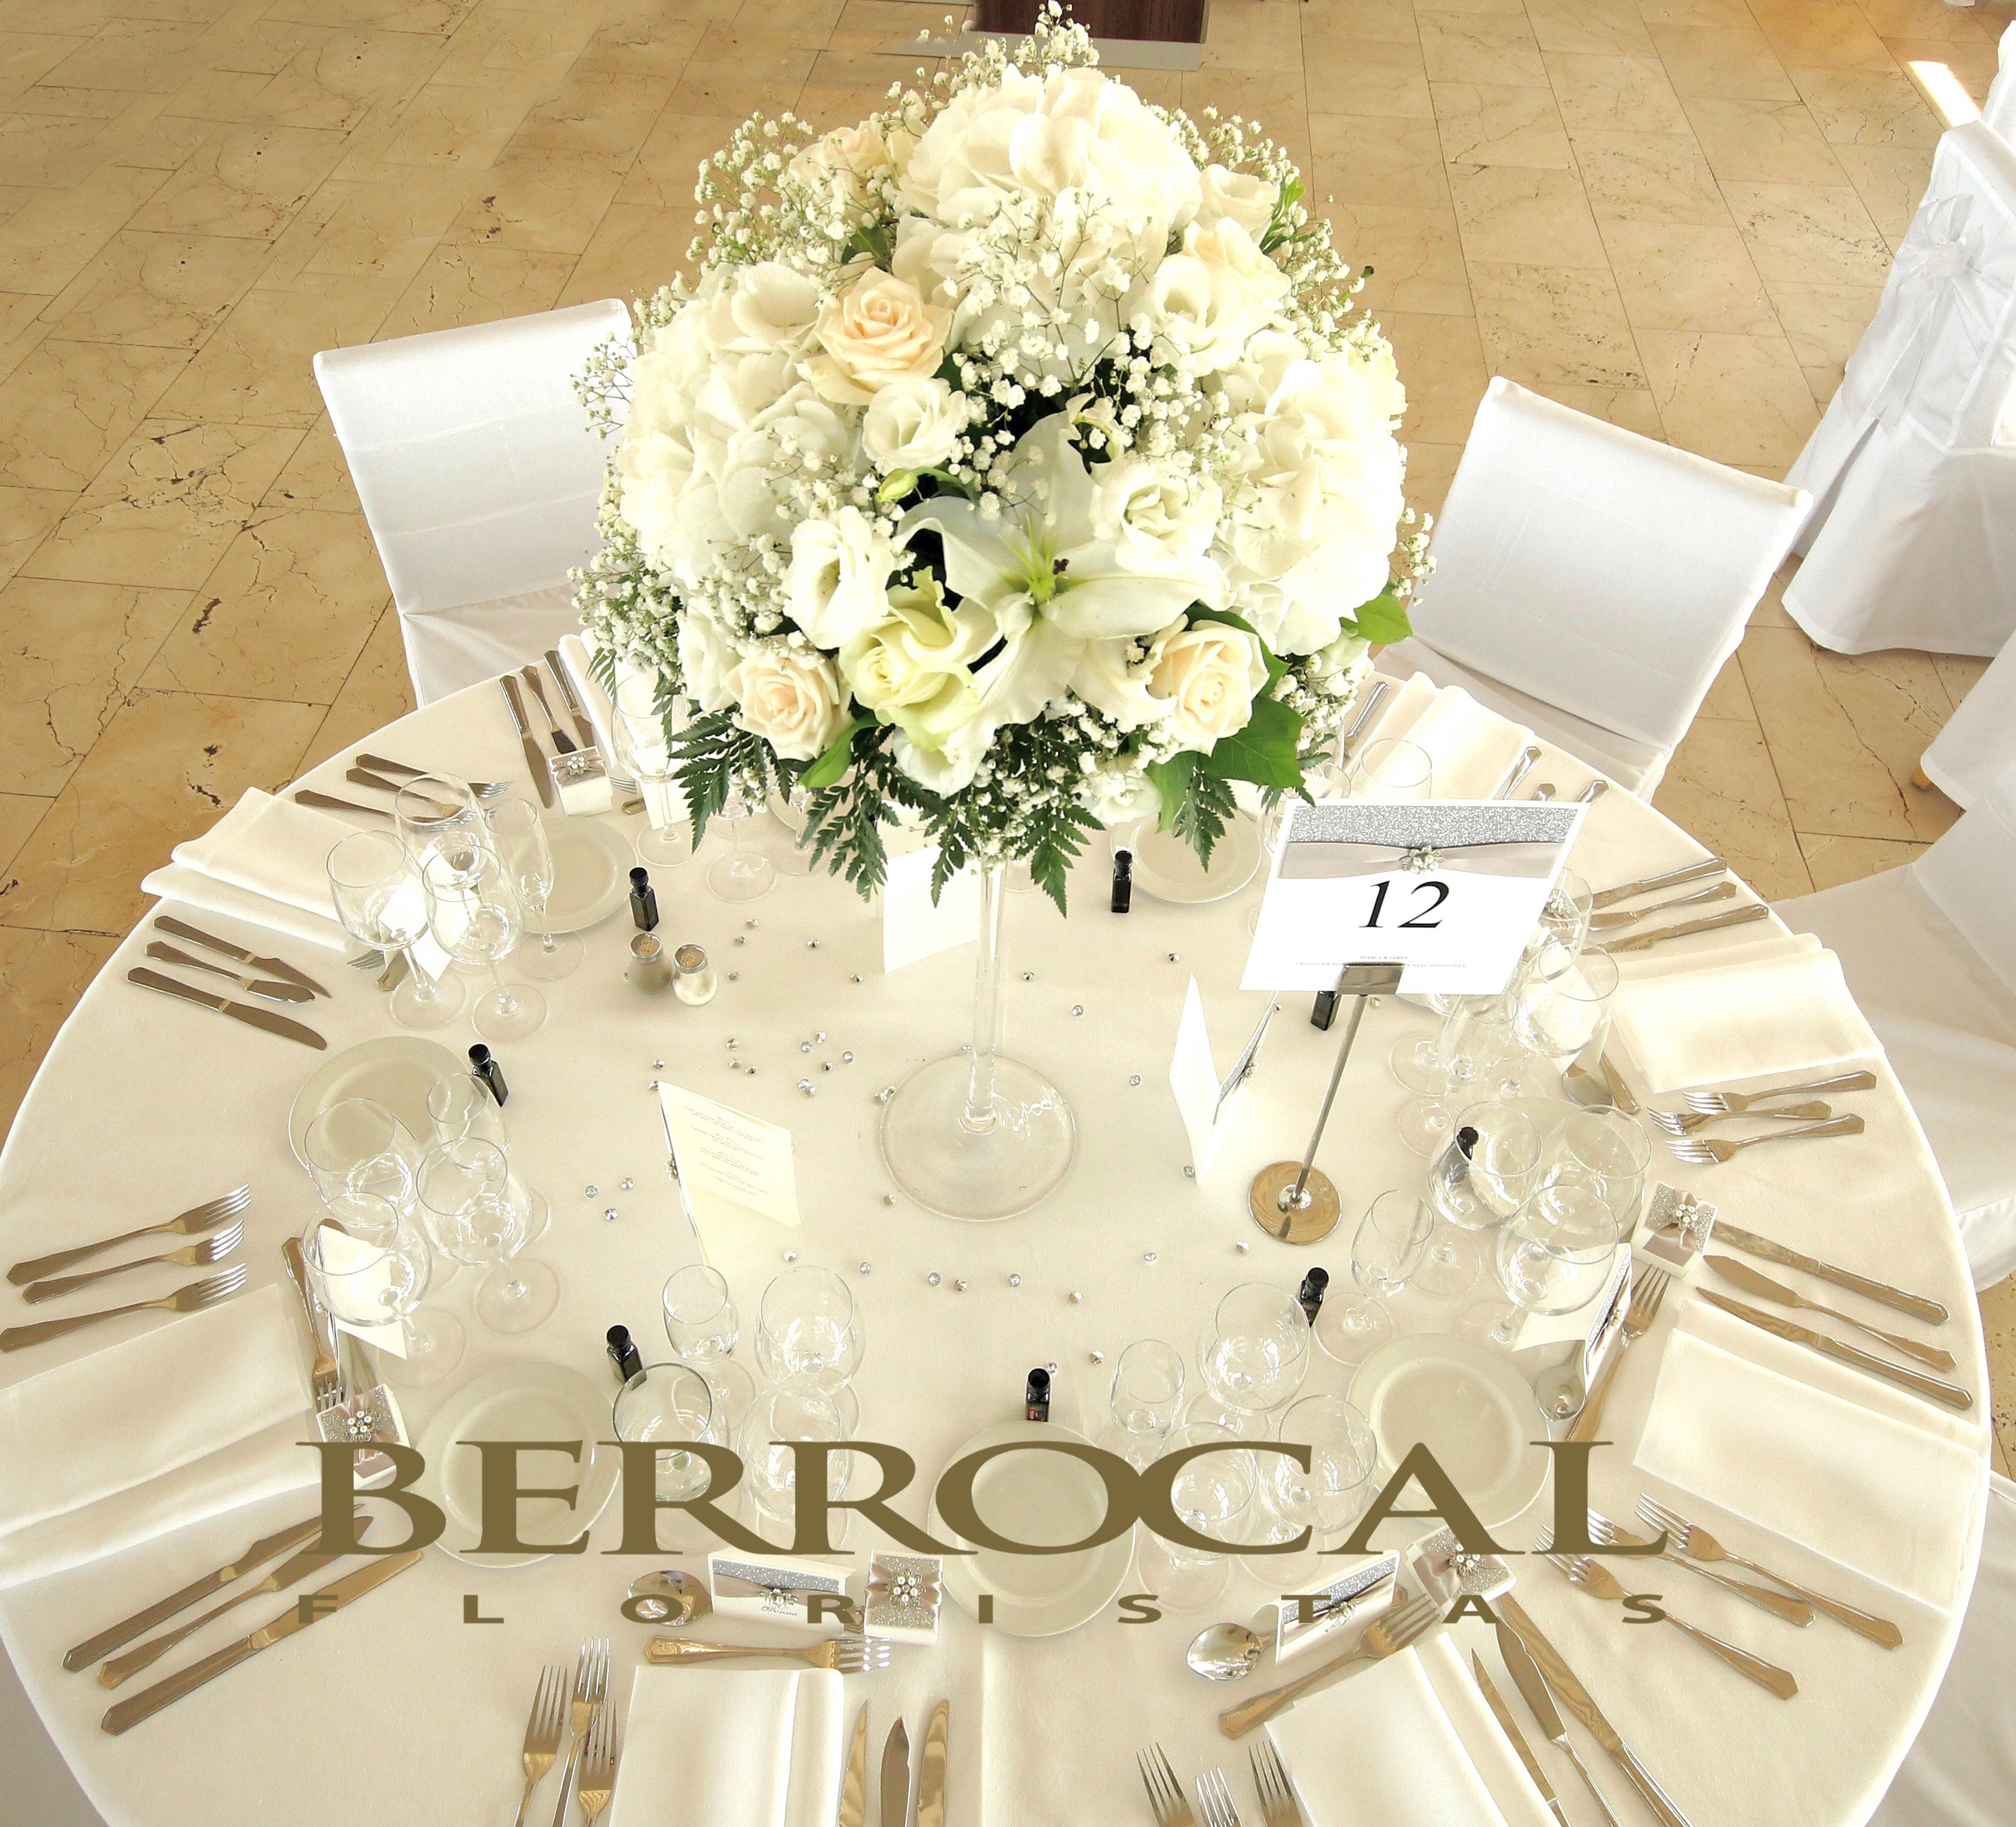 Central piece.  Martini glass.  Hydrangeas, roses, Lilium, lisianthus. White and Ivory colors.